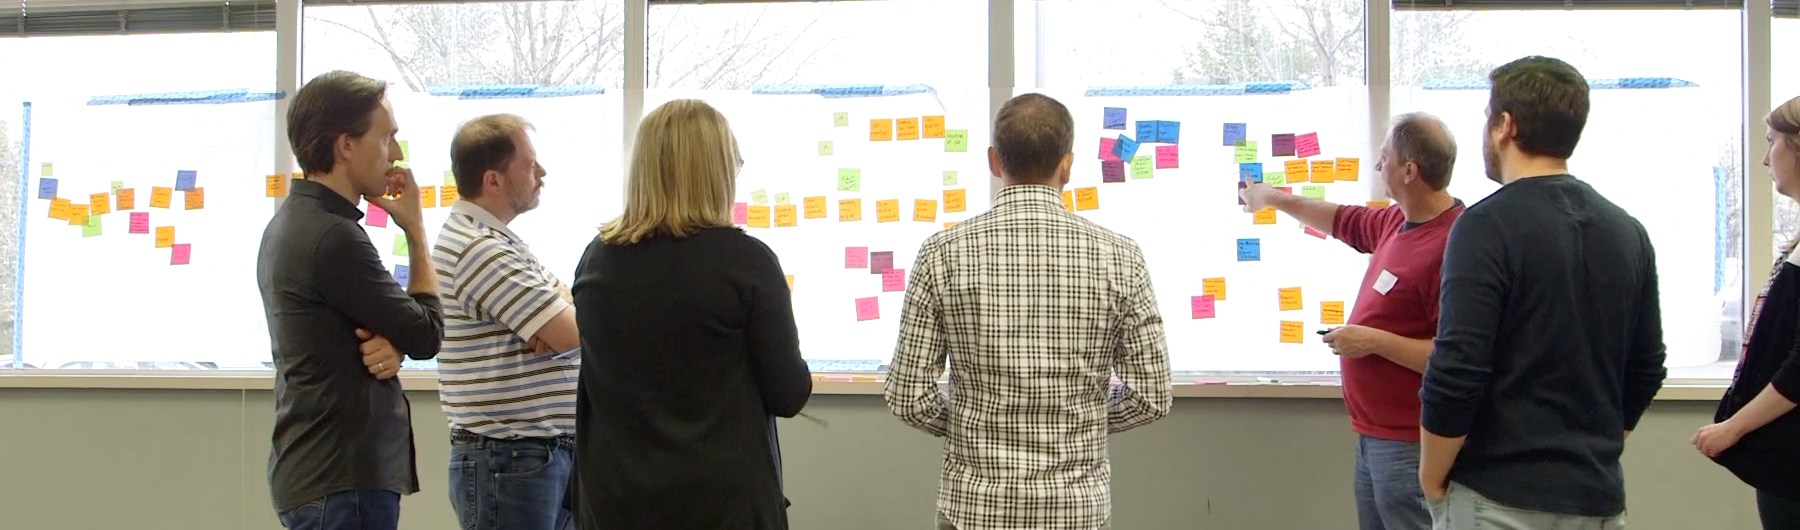 EventStorming Facilitation - Greater Boston Two Day Workshop